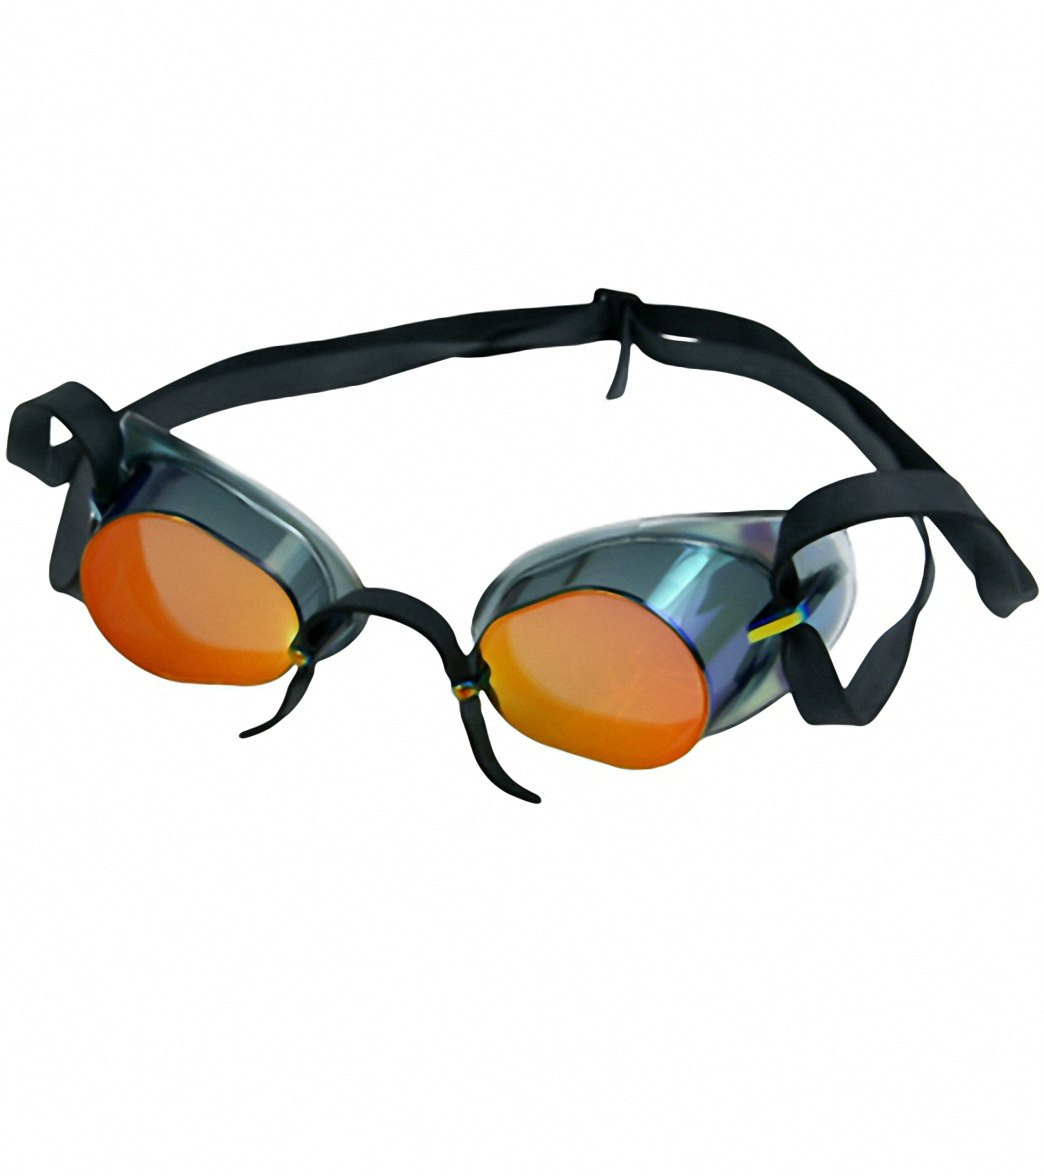 swimming goggles that fit over glasses avt8  TYR Socket Rocket Metallized Goggle